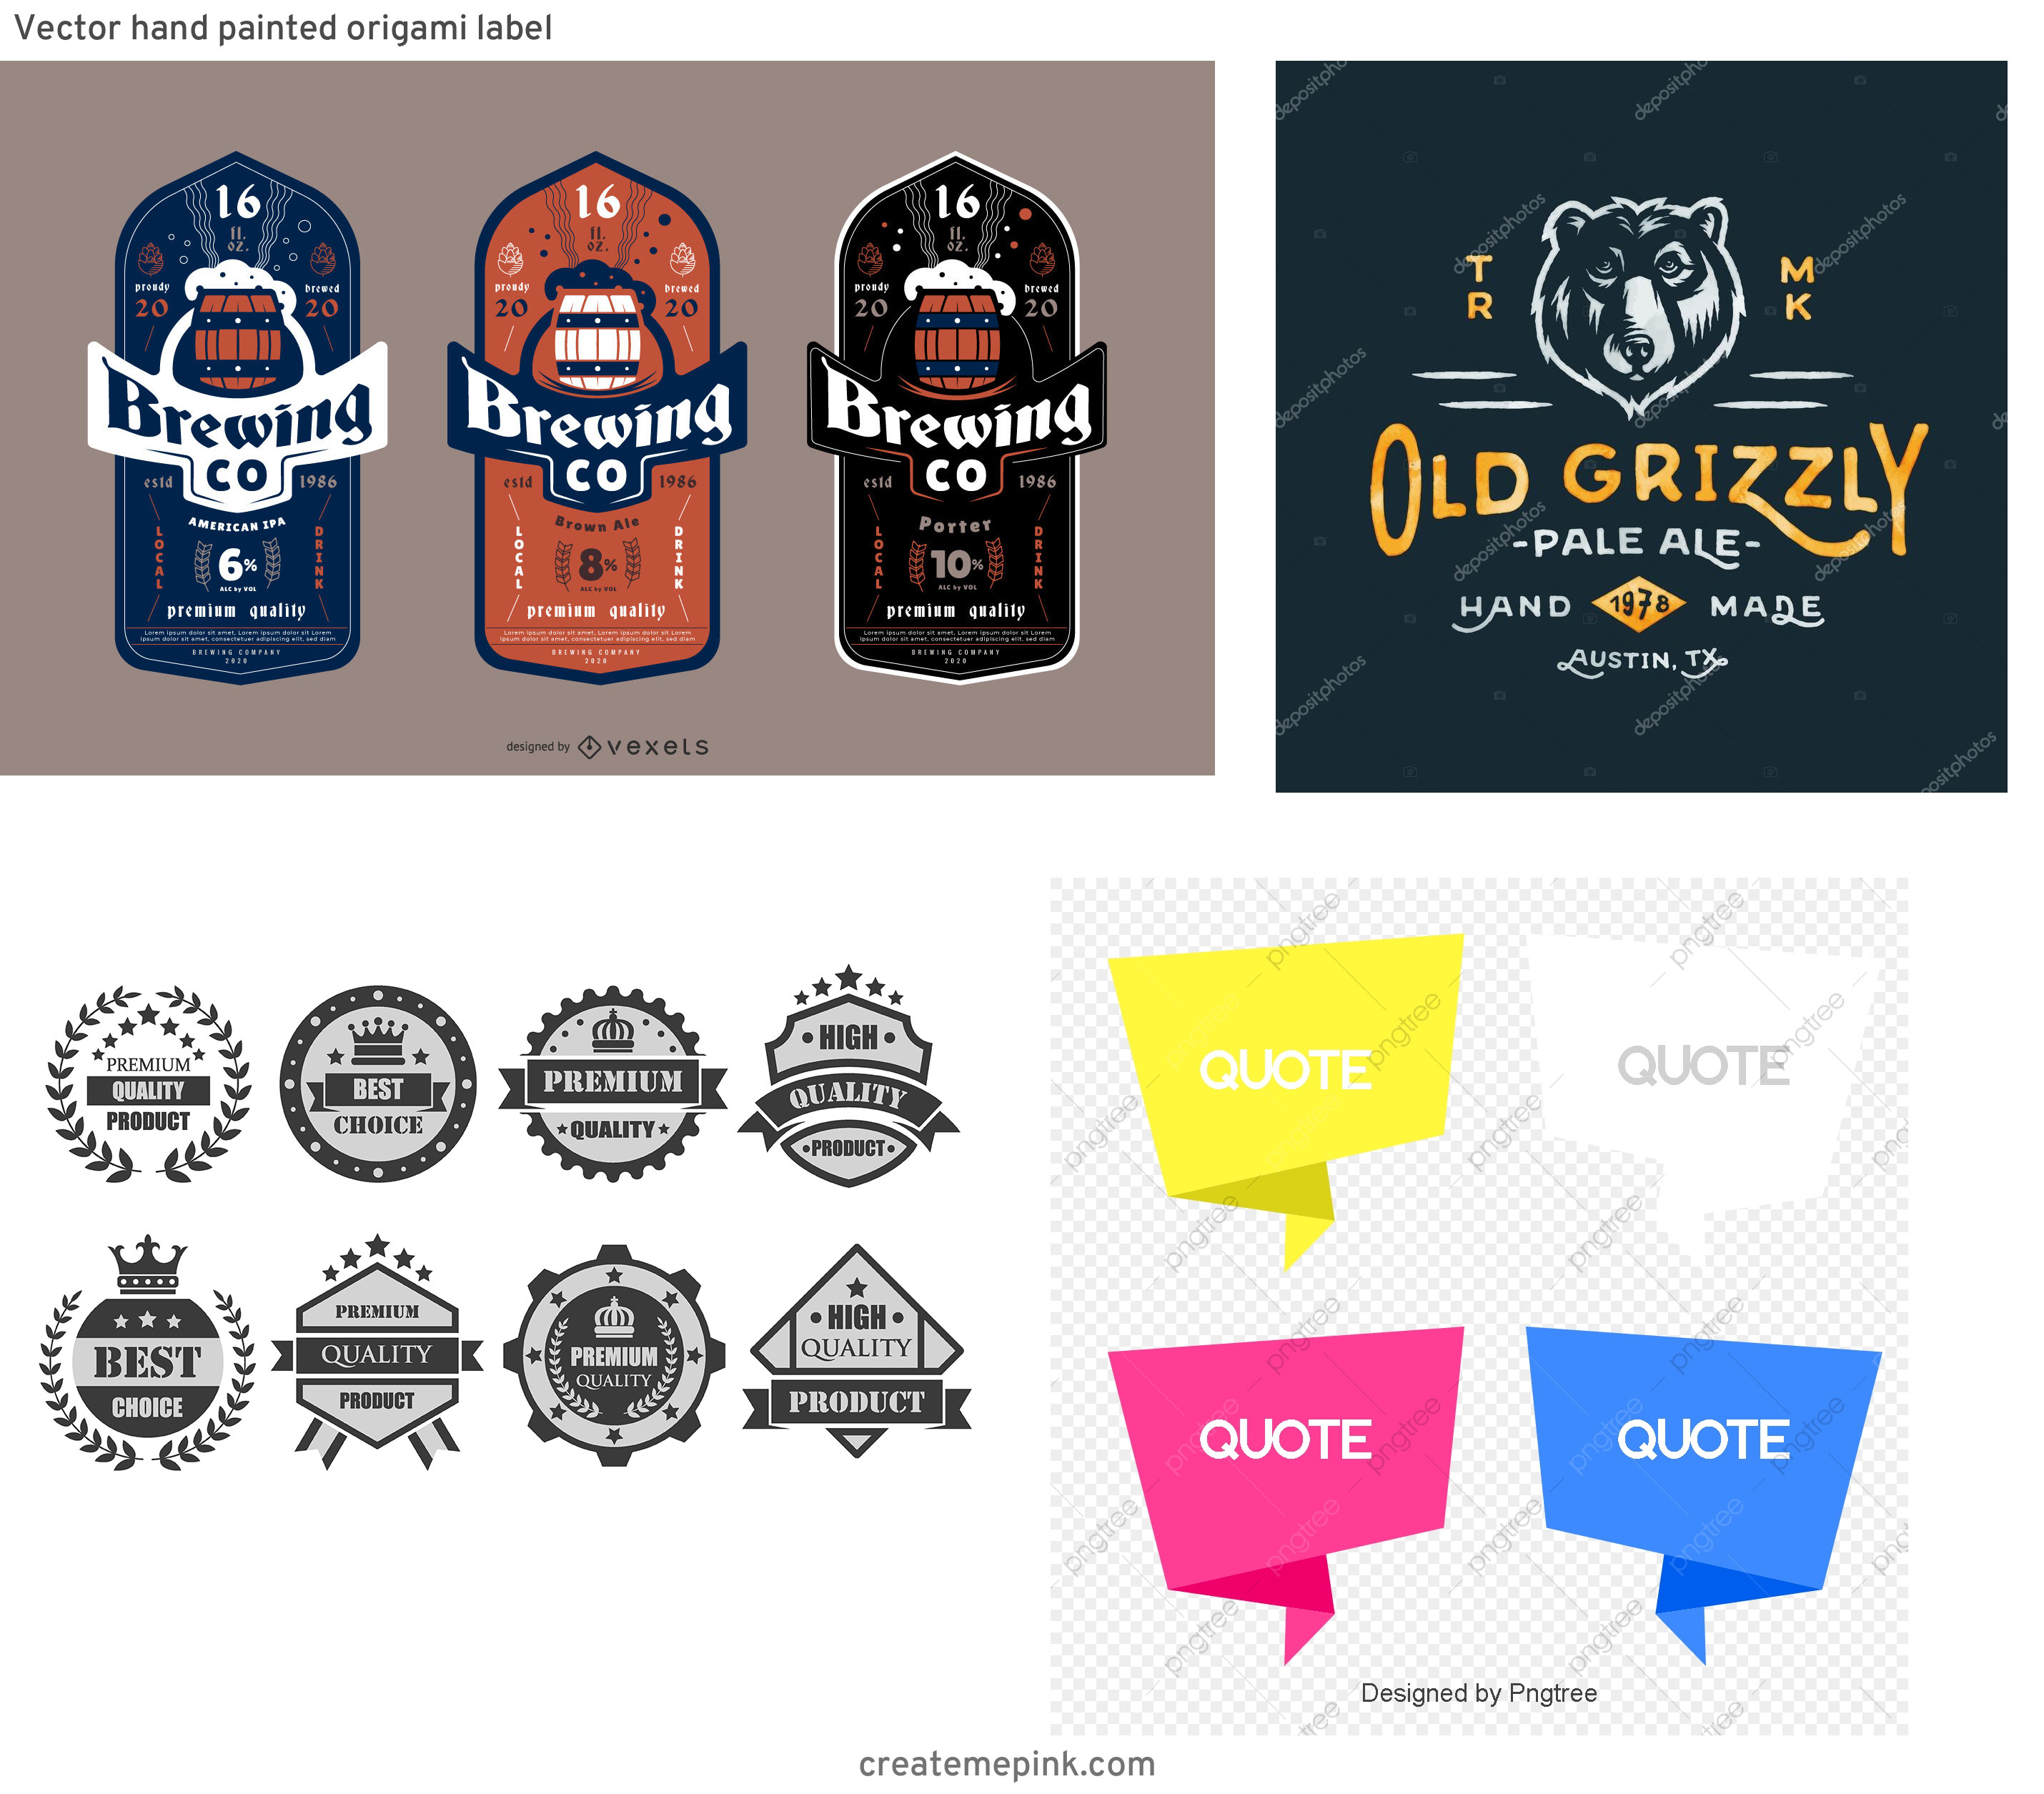 Custom Beer Labels Vector Graphics: Vector Hand Painted Origami Label